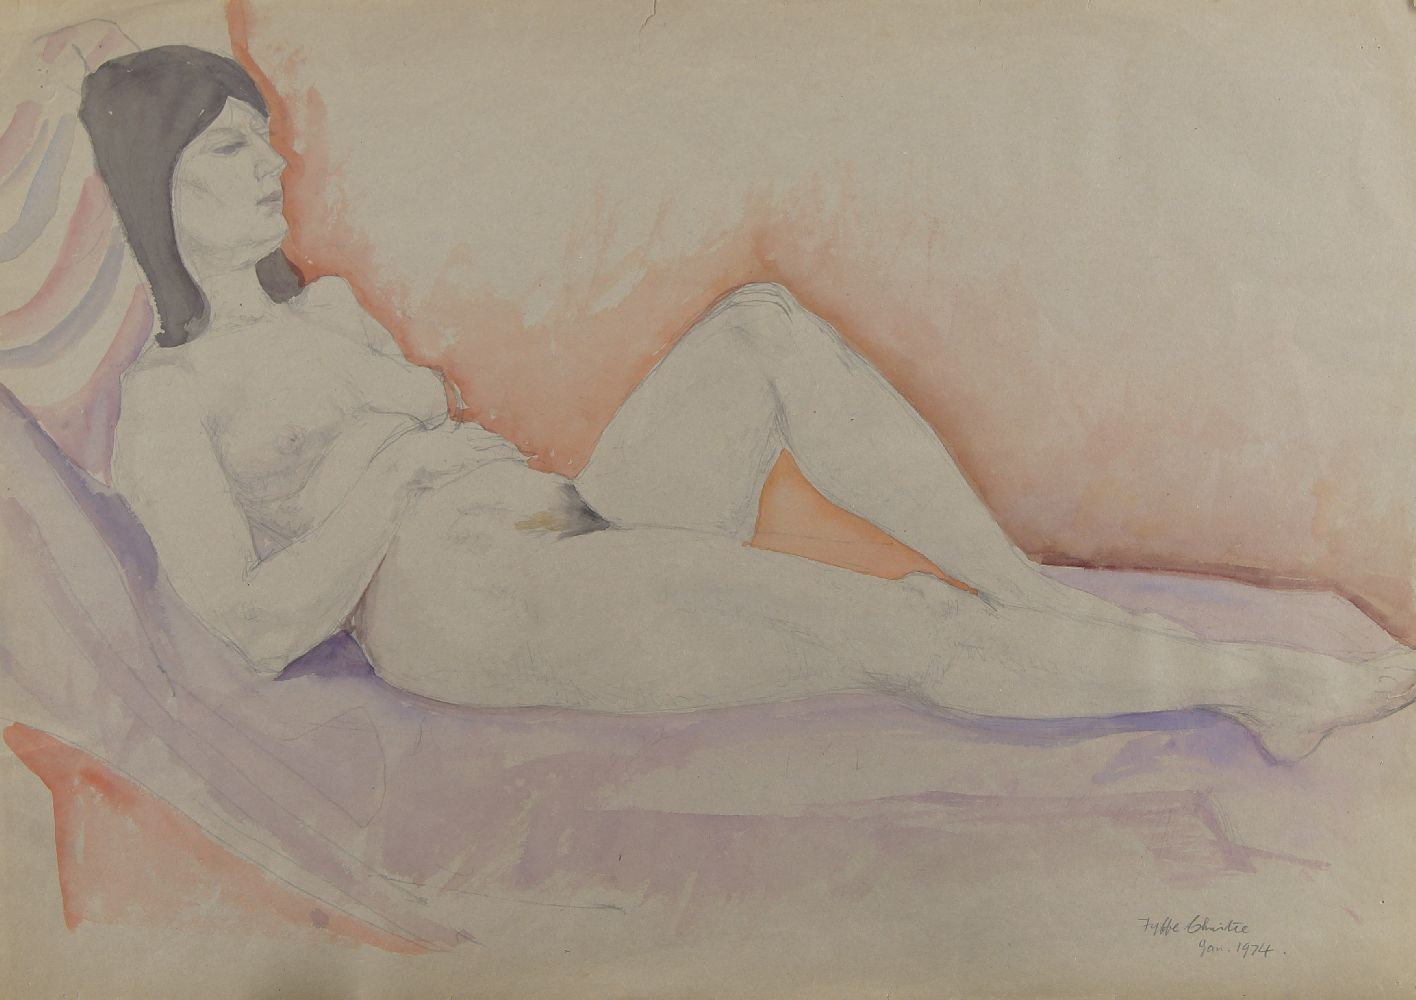 Fyffe Christie, British 1918-1979- Reclining model; pencil and watercolour, signed and dated 1974,